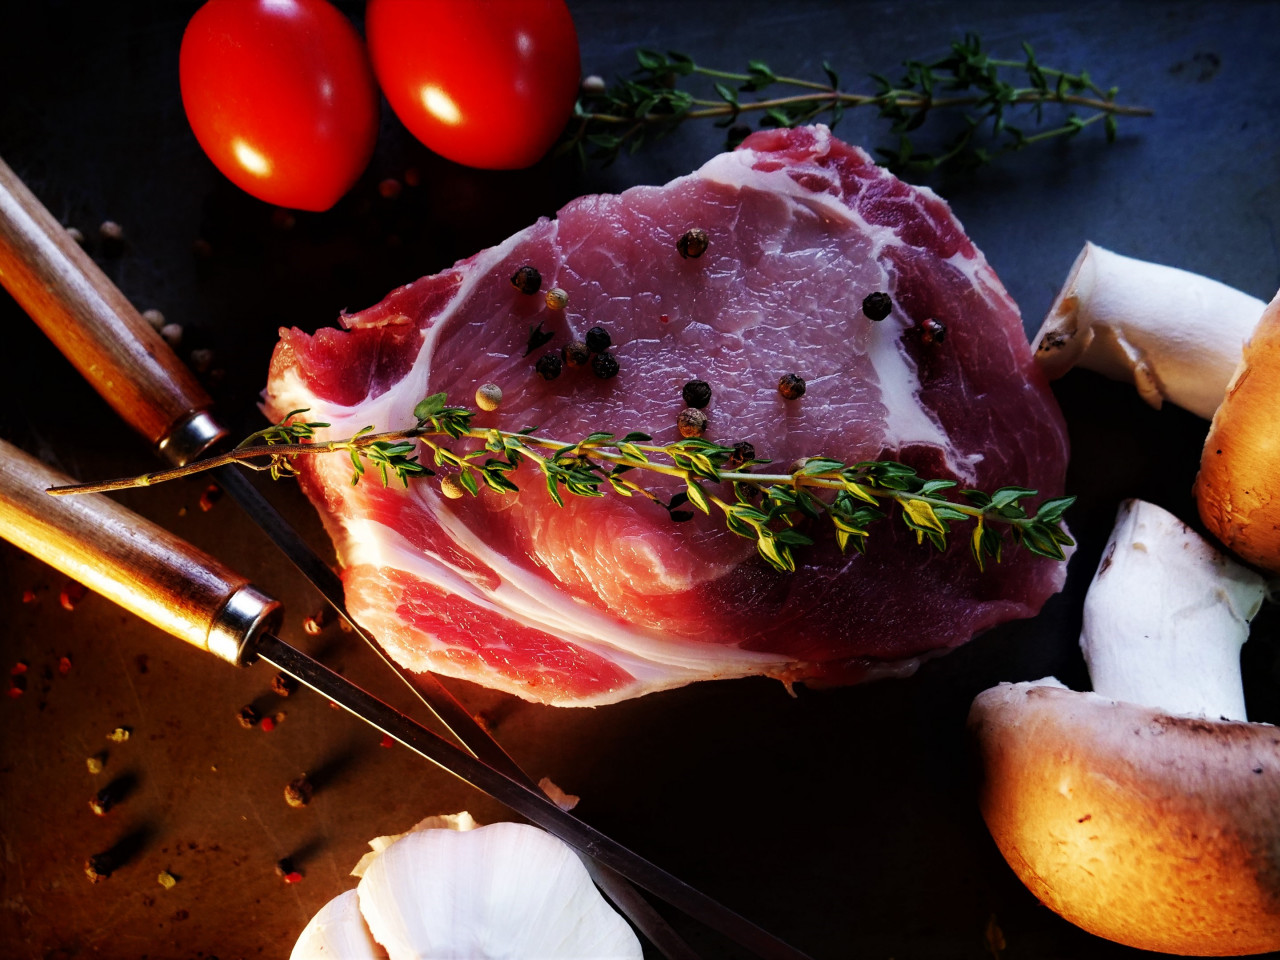 Ready for a tasty steak with mushrooms, tomatoes wallpaper 1280x960